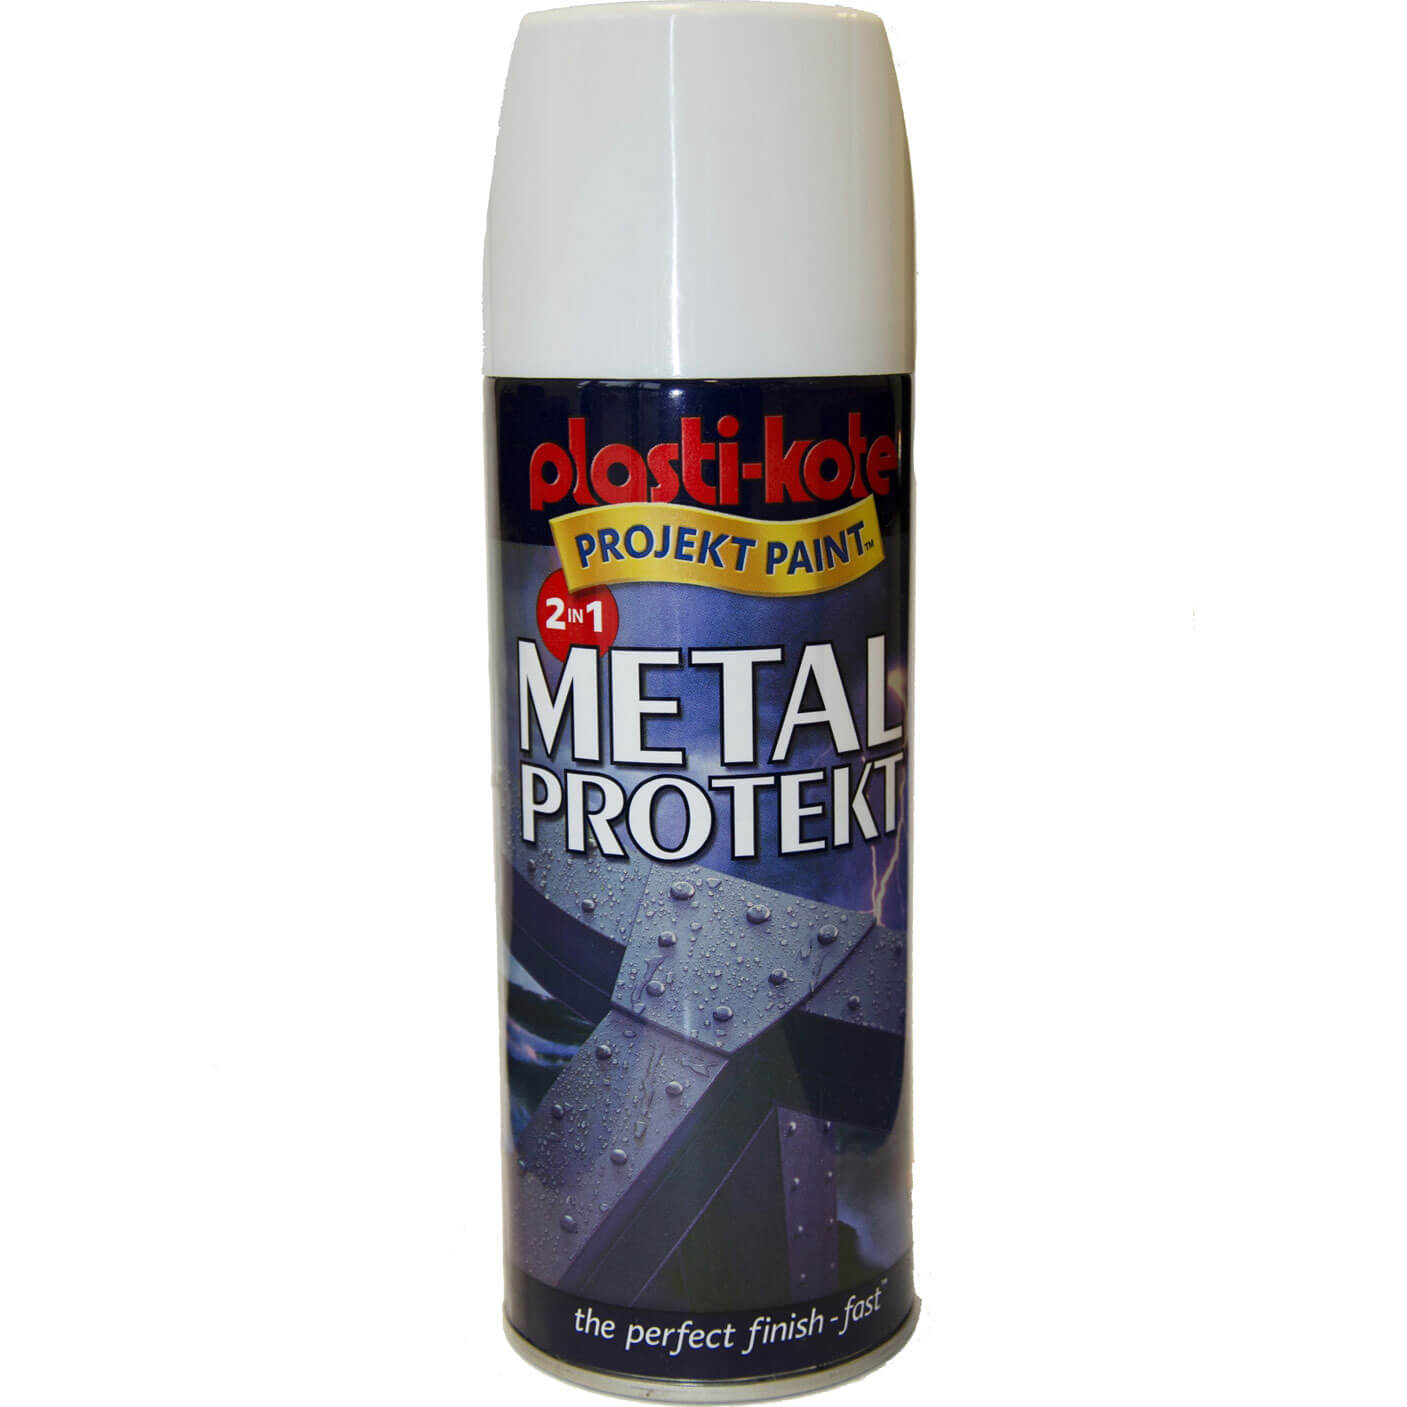 Plastikote metal protekt aerosol spray paint brown 400ml Spray paint for metal